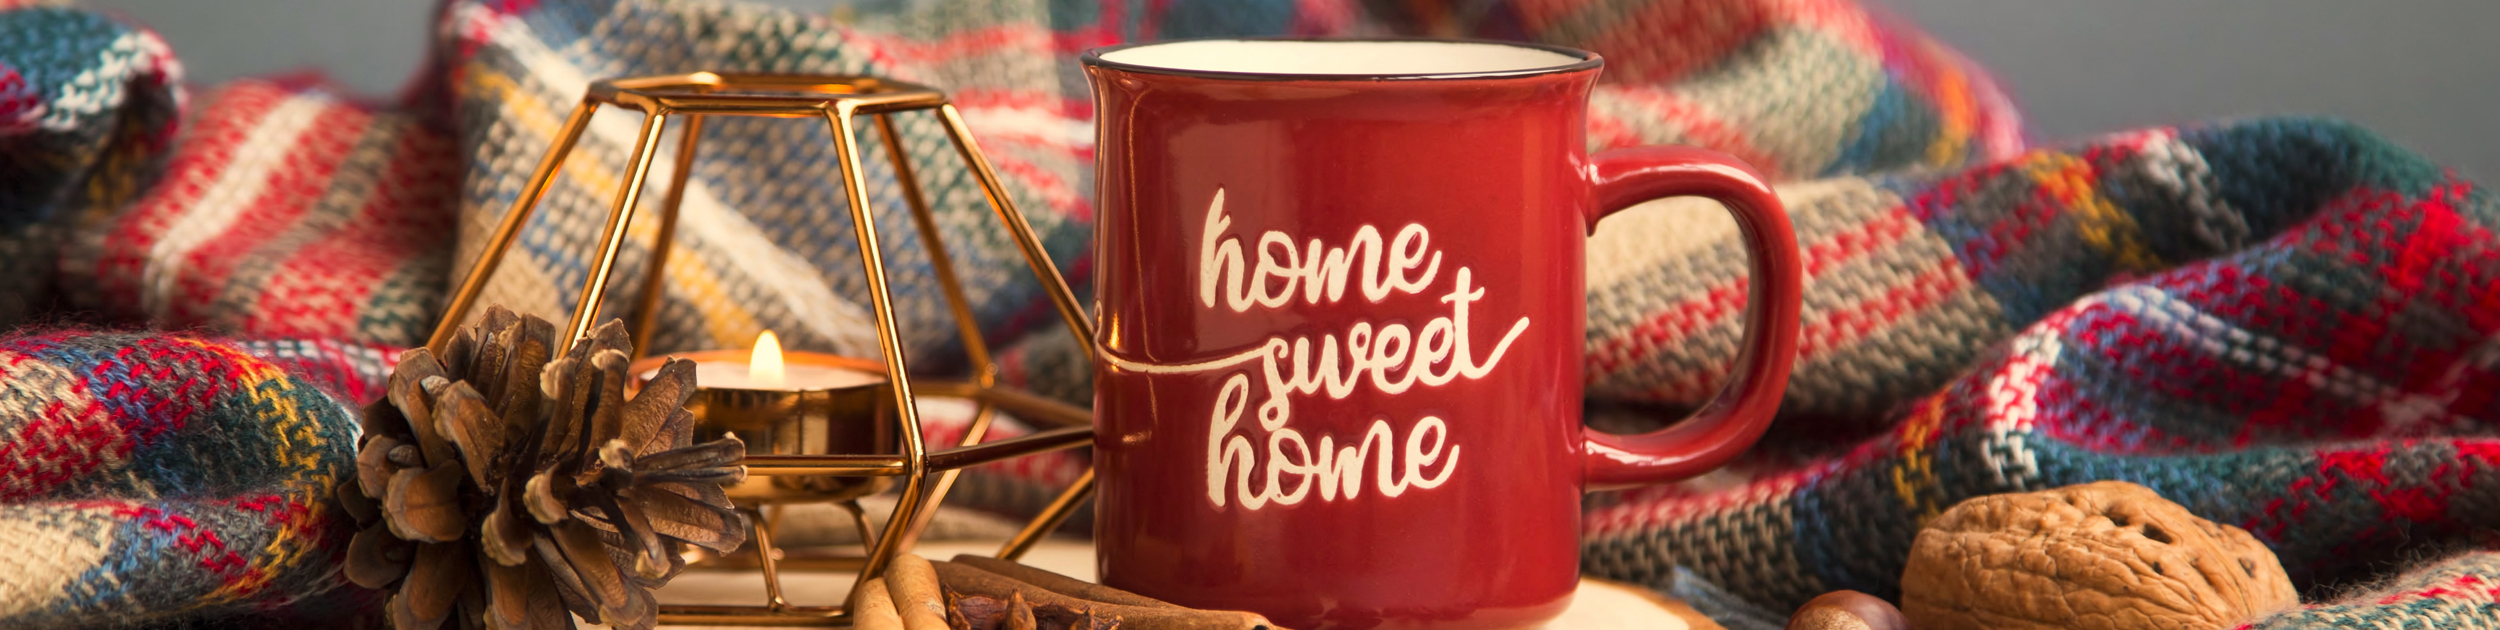 Home Sweet Home mug shown by fireplace